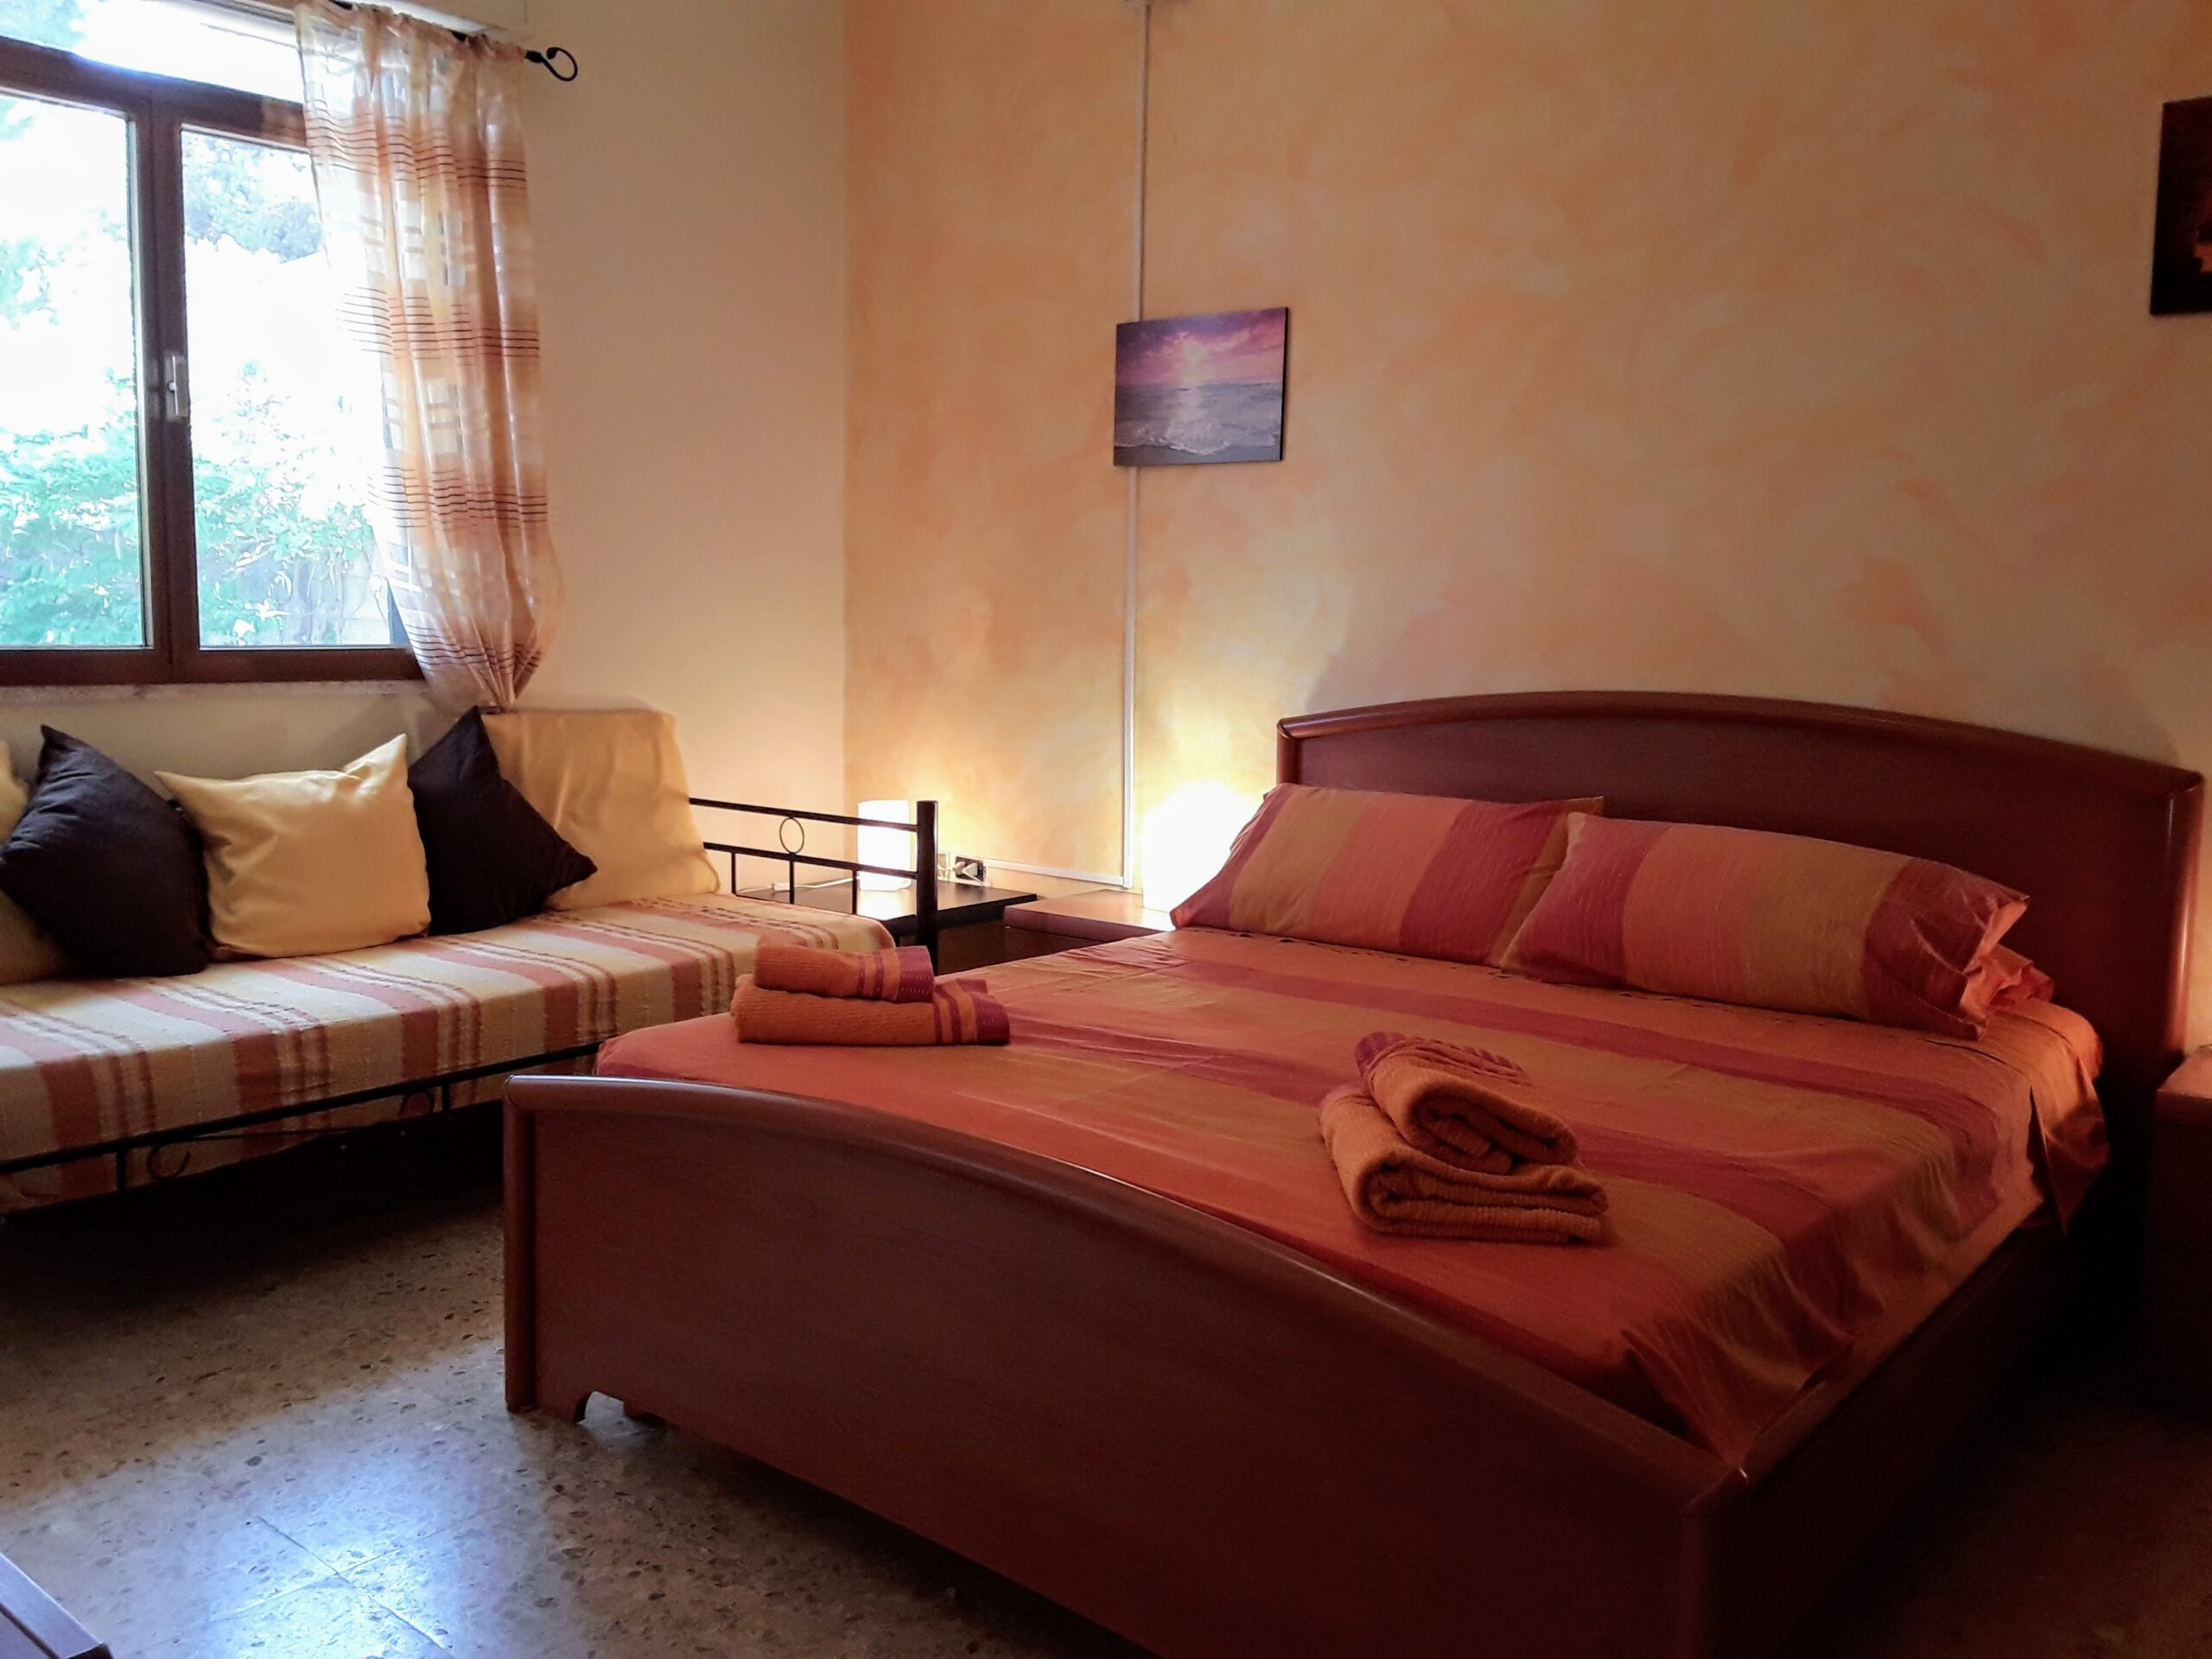 Puglia Holiday Villas - everything included, bed linen, towels, A/C, wifi, hairdryer